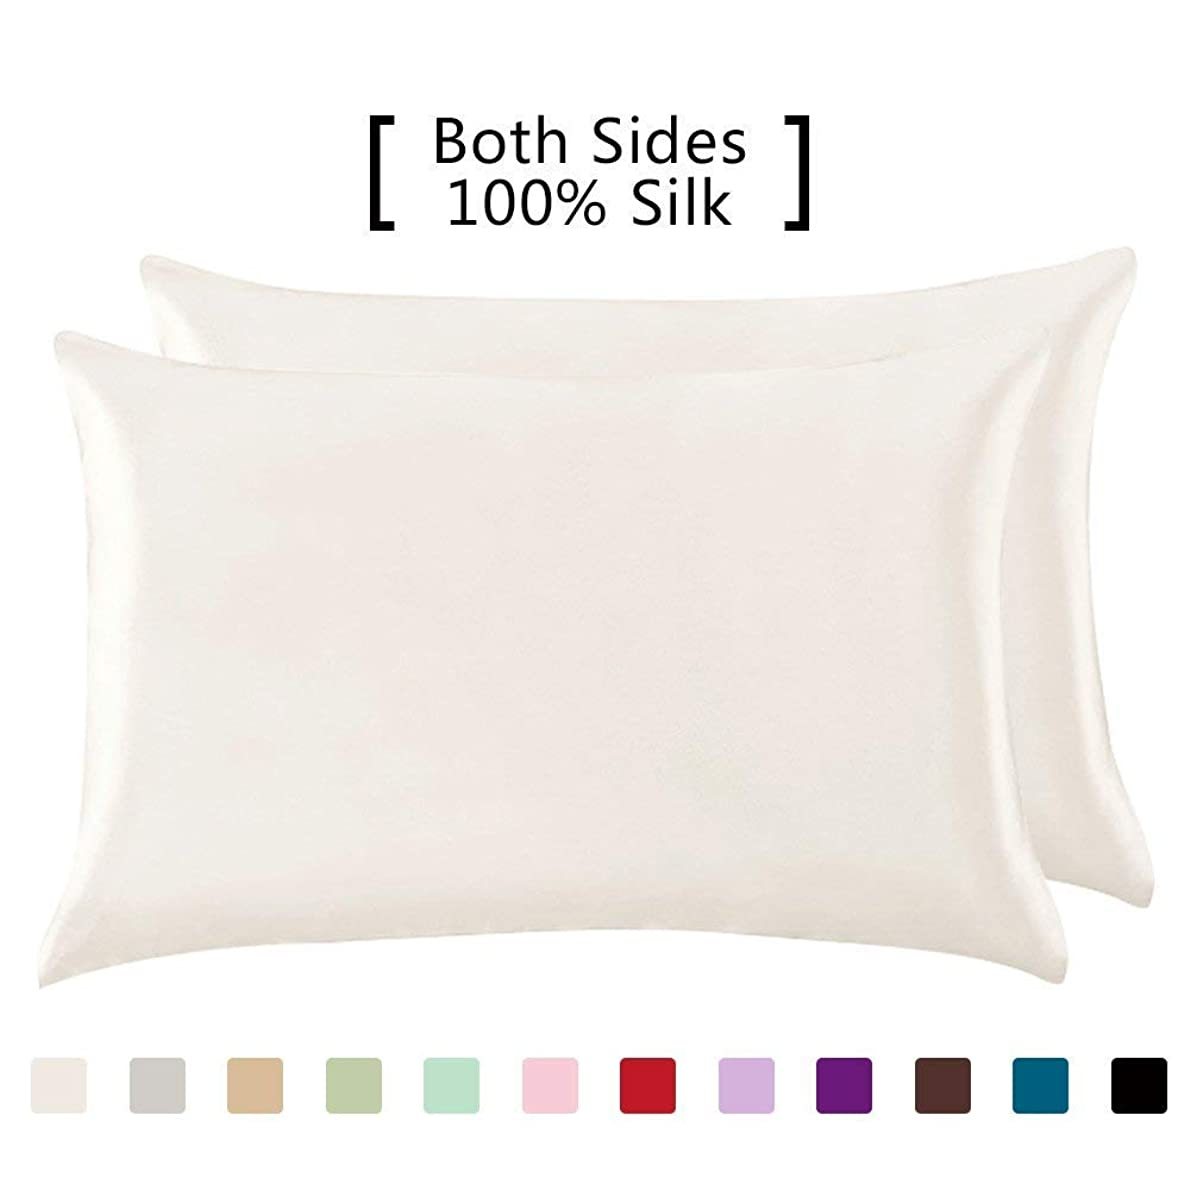 Faunna Queen 2-Pack Luxana Pillow Cover